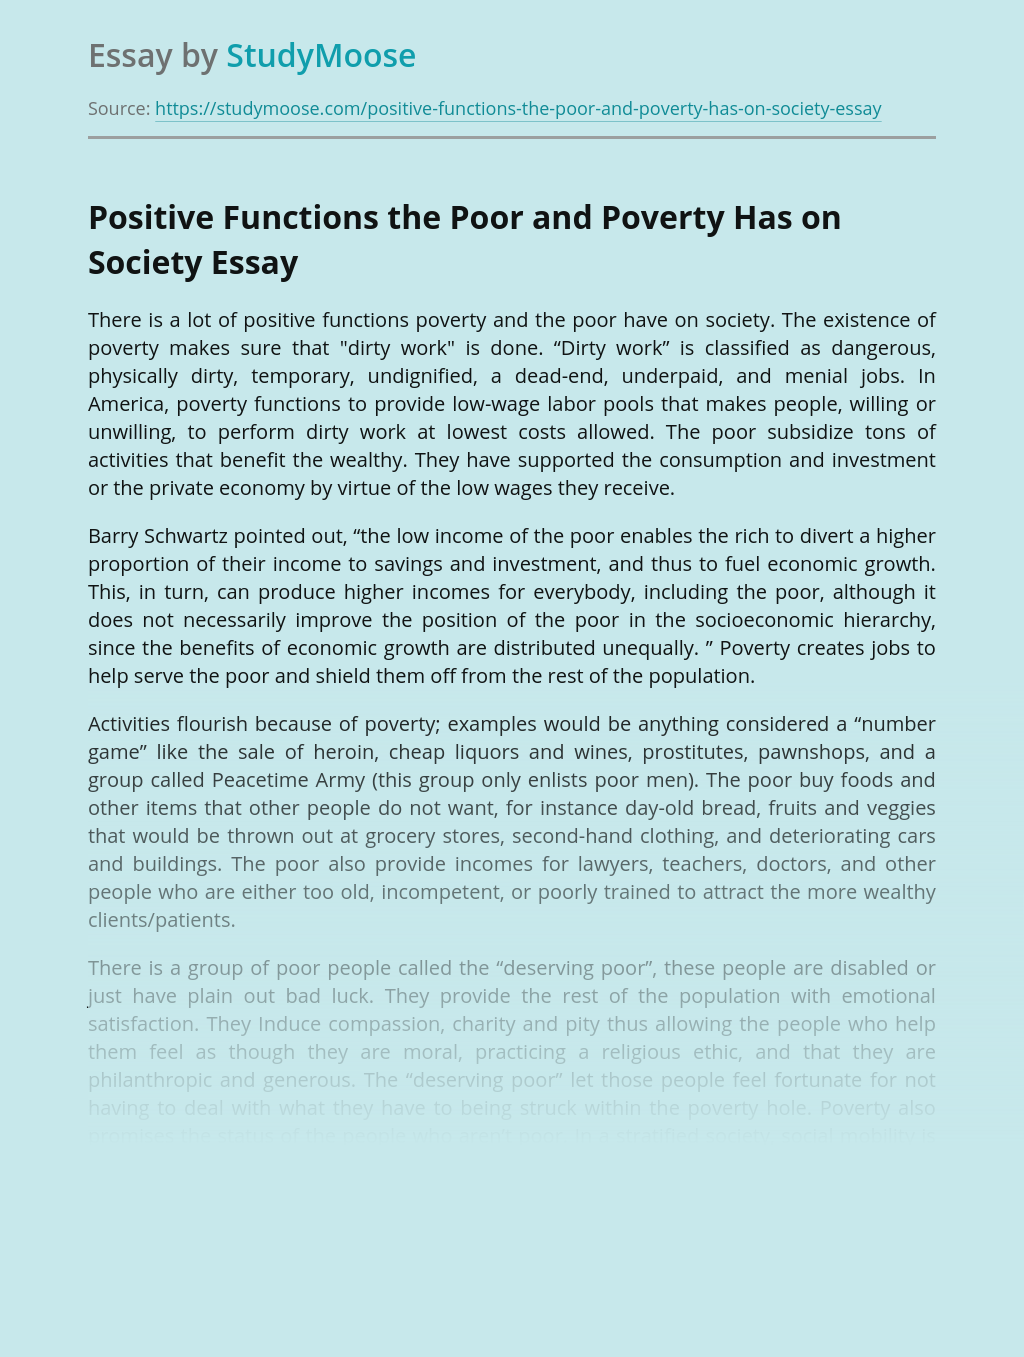 Positive Functions the Poor and Poverty Has on Society